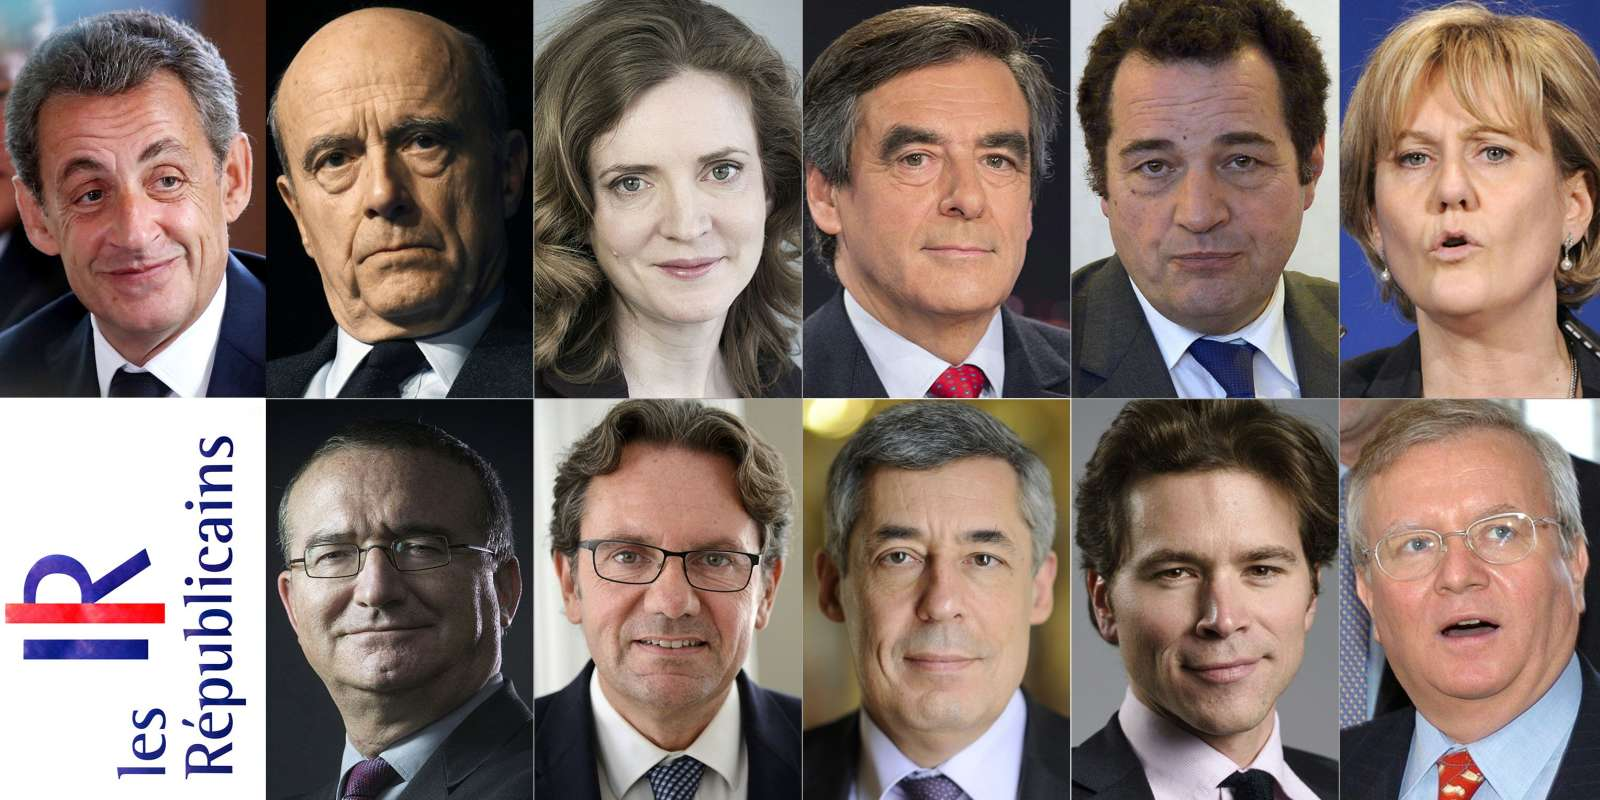 (COMBO) This combination of file pictures created on August 22, 2016 shows the 13 candidates who are so far running for the right-wing primaries ahead of the 2017 French presidential election. (Top from left) Nicolas Sarkozy, Alain Juppe, Nathalie Kosciusko-Morizet, Francois Fillon, Jean-Frederic Poisson, Nadine Morano, and Bruno Le Maire. (Bottom from left) Herve Mariton, Frederic Lefebvre, Henri Guaino, Geoffroy Didier, Jacques Myard, and Jean-Francois Cope. / AFP / POOL / MEHDI FEDOUACH AND JOEL SAGET AND KENZO TRIBOUILLARD AND BERTRAND GUAY AND JEAN-CHRISTOPHE VERHAEGEN AND JEAN-PIERRE CLATOT AND MARTIN BUREAU AND ERIC FEFERBERG AND JEAN AYISSI AND François NASCIMBENI